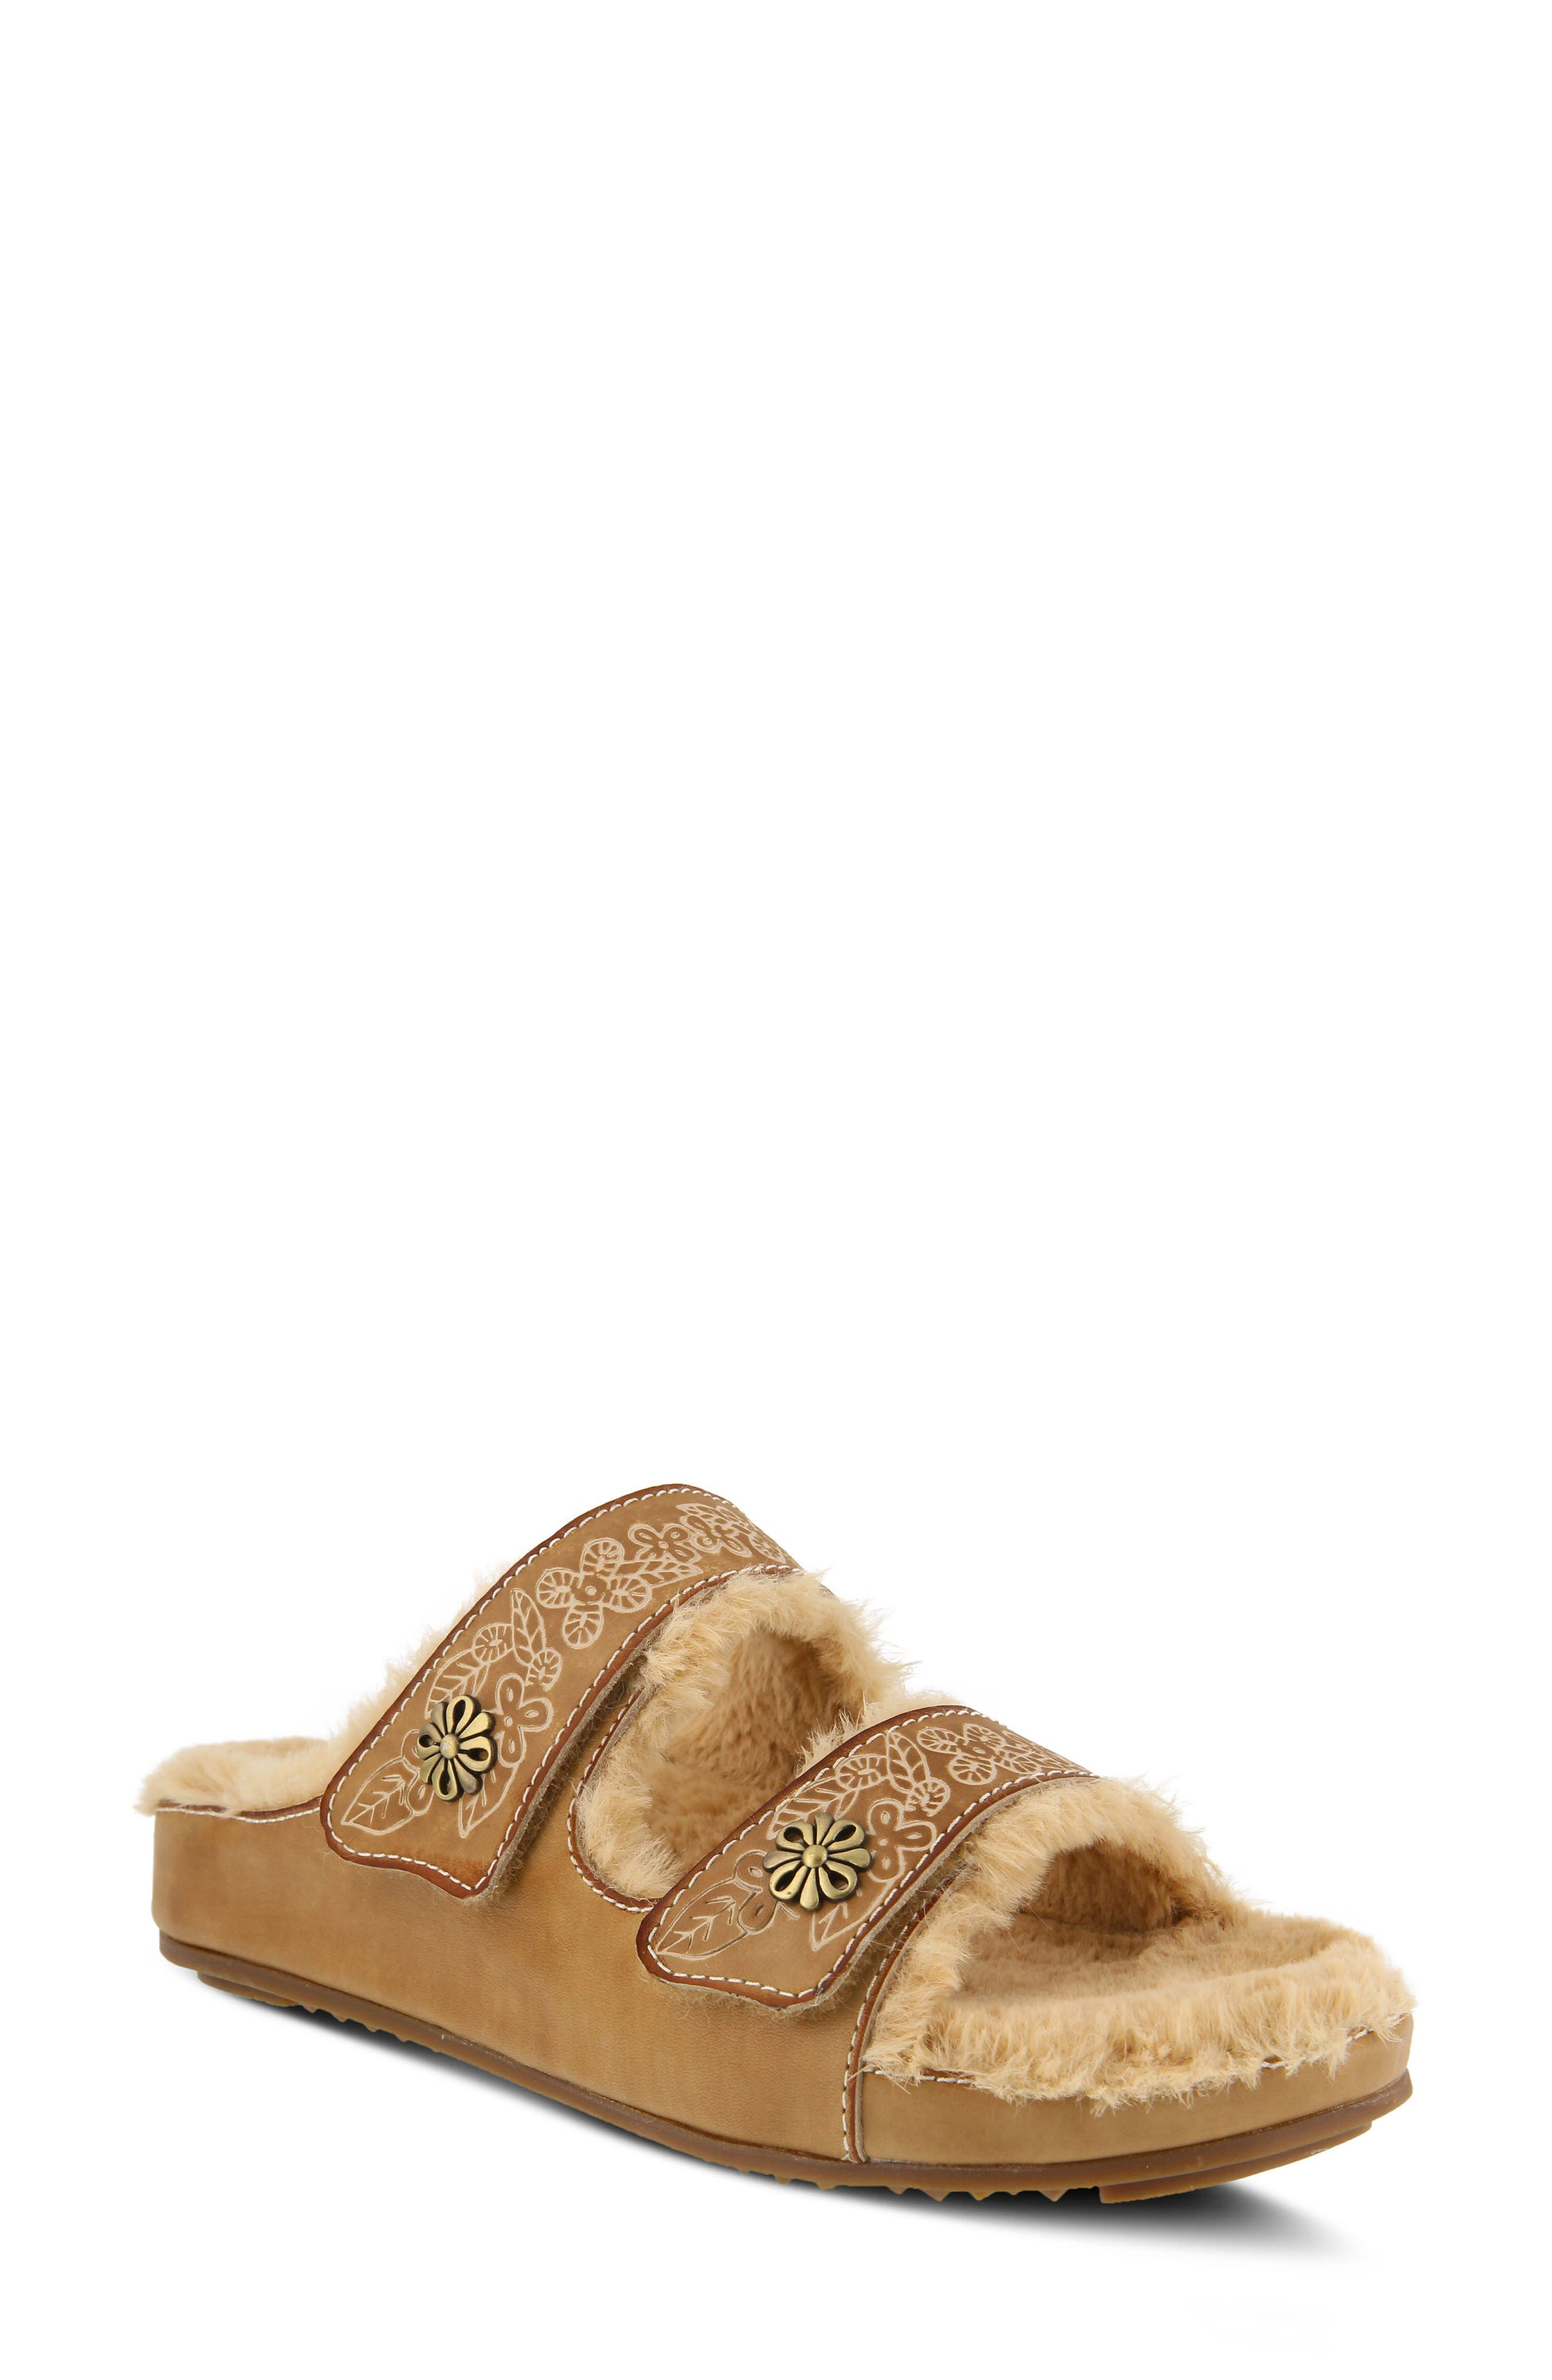 L'Artiste Furrie Sandal,                         Main,                         color, Beige Leather